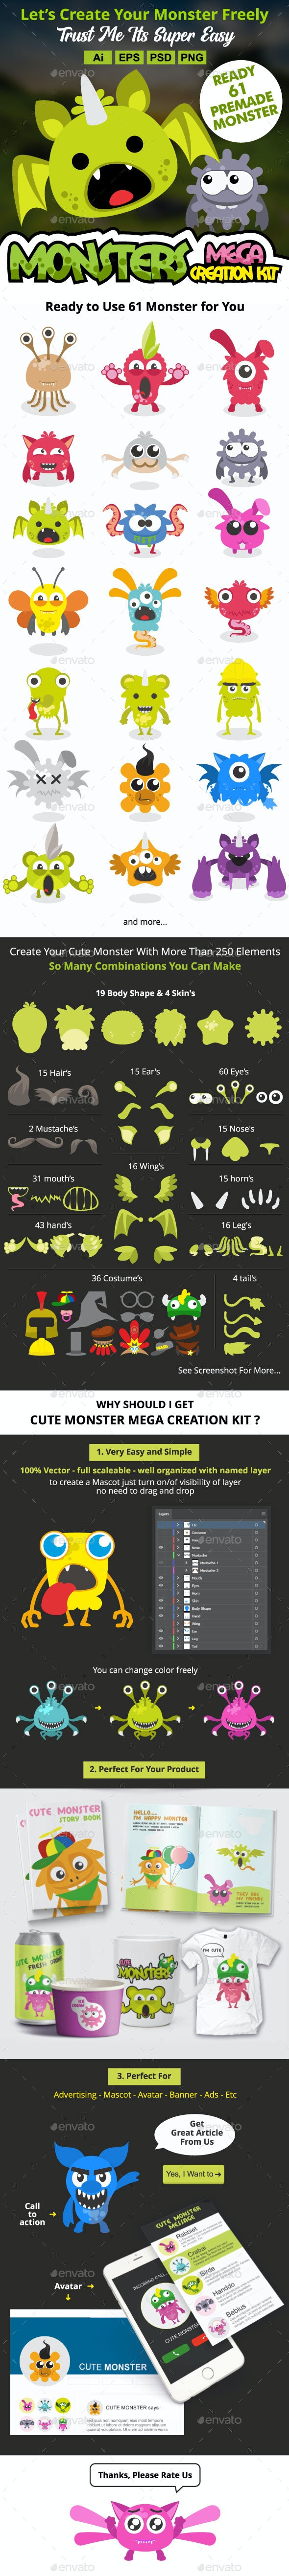 Character Creation Kit - Monsters Characters